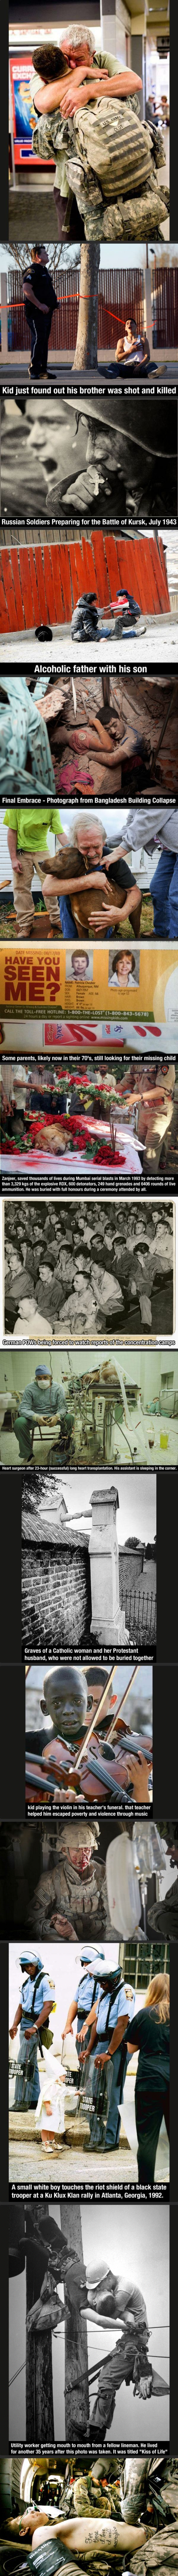 Some of the most powerful images ever captured …